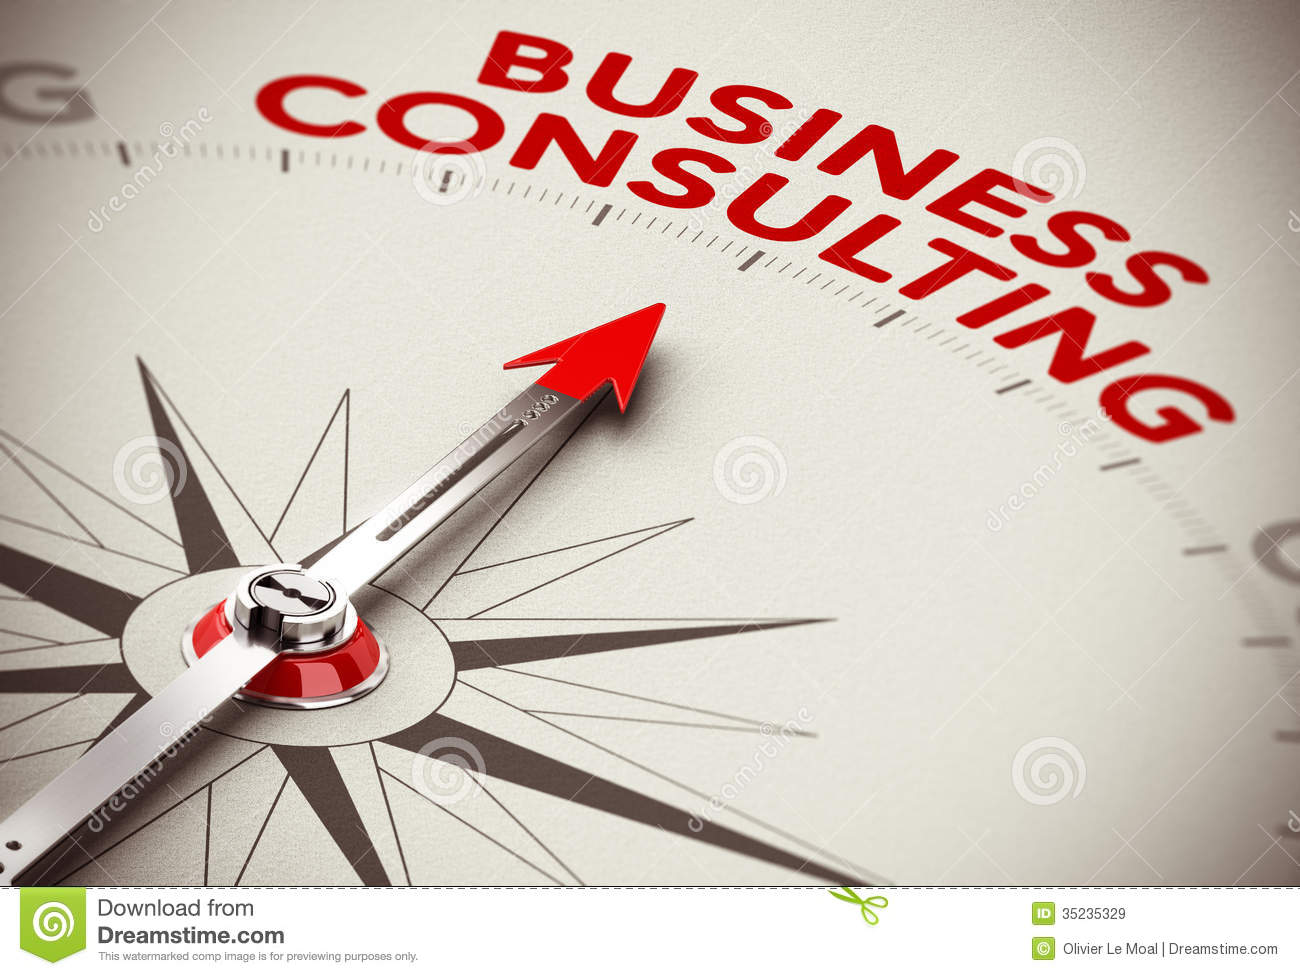 Business consulting concept stock illustration for Strategic design consultancy